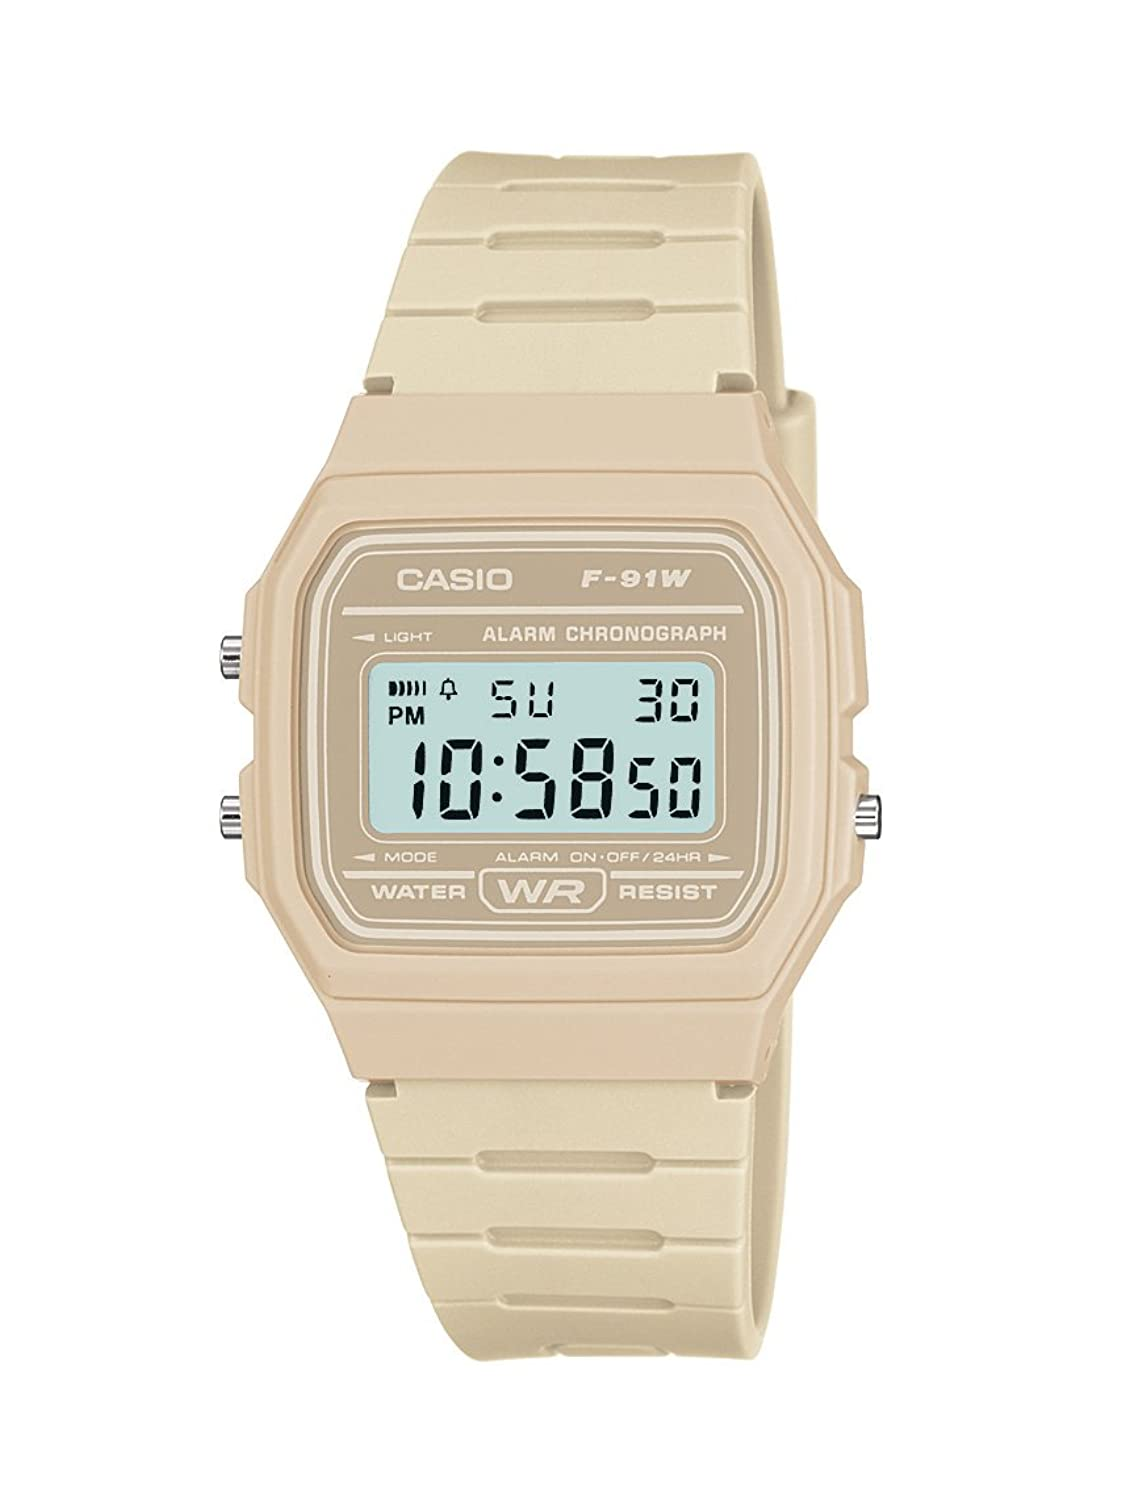 casio f 91w 1yer men s resin digital watch amazon co uk watches casio men s quartz watch digital display and resin strap